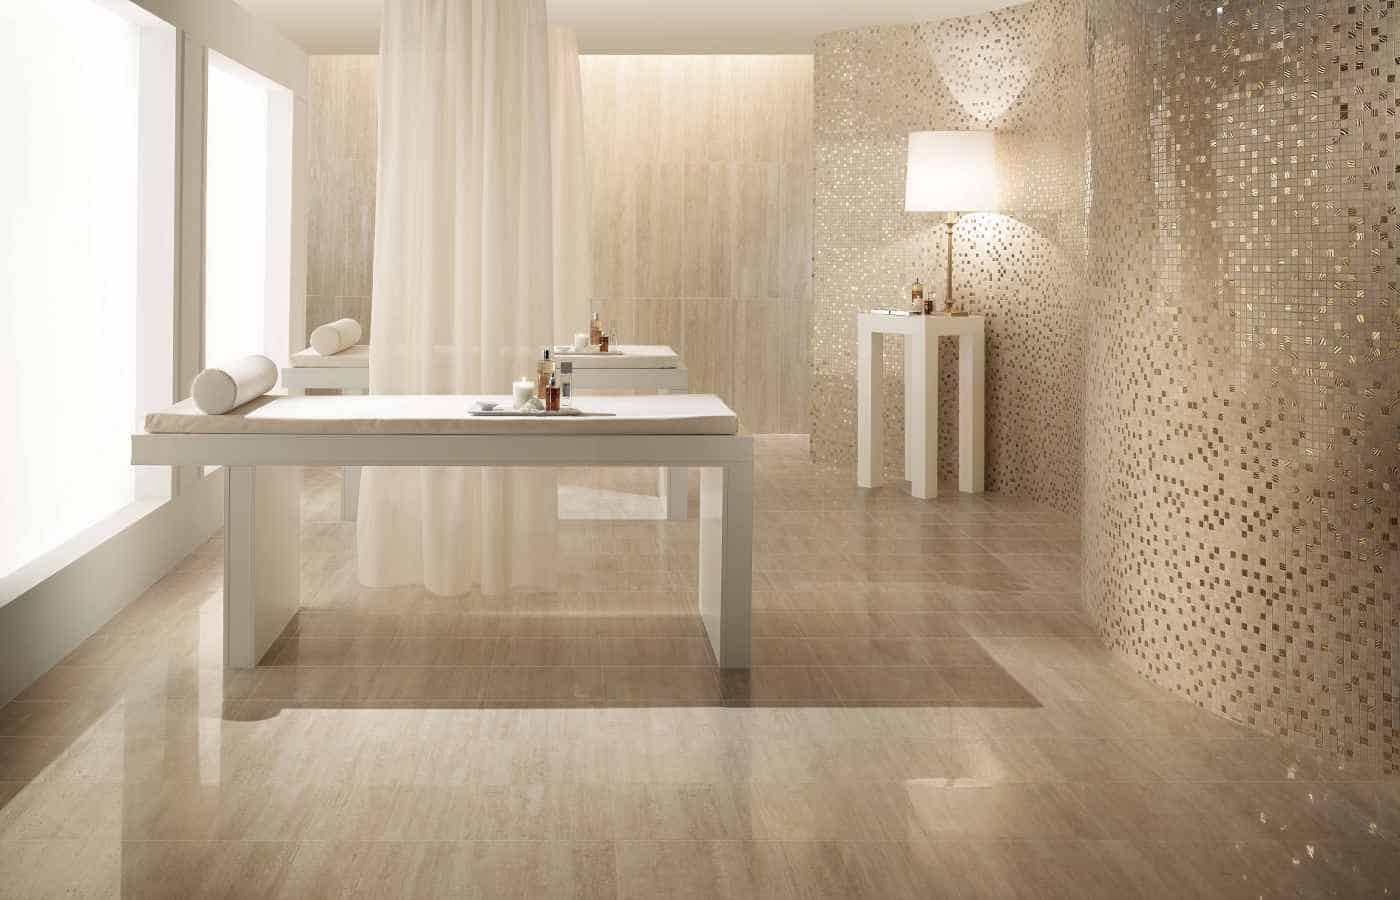 Wood Like Tiles Cost Effective And Long Lasting Contemporary